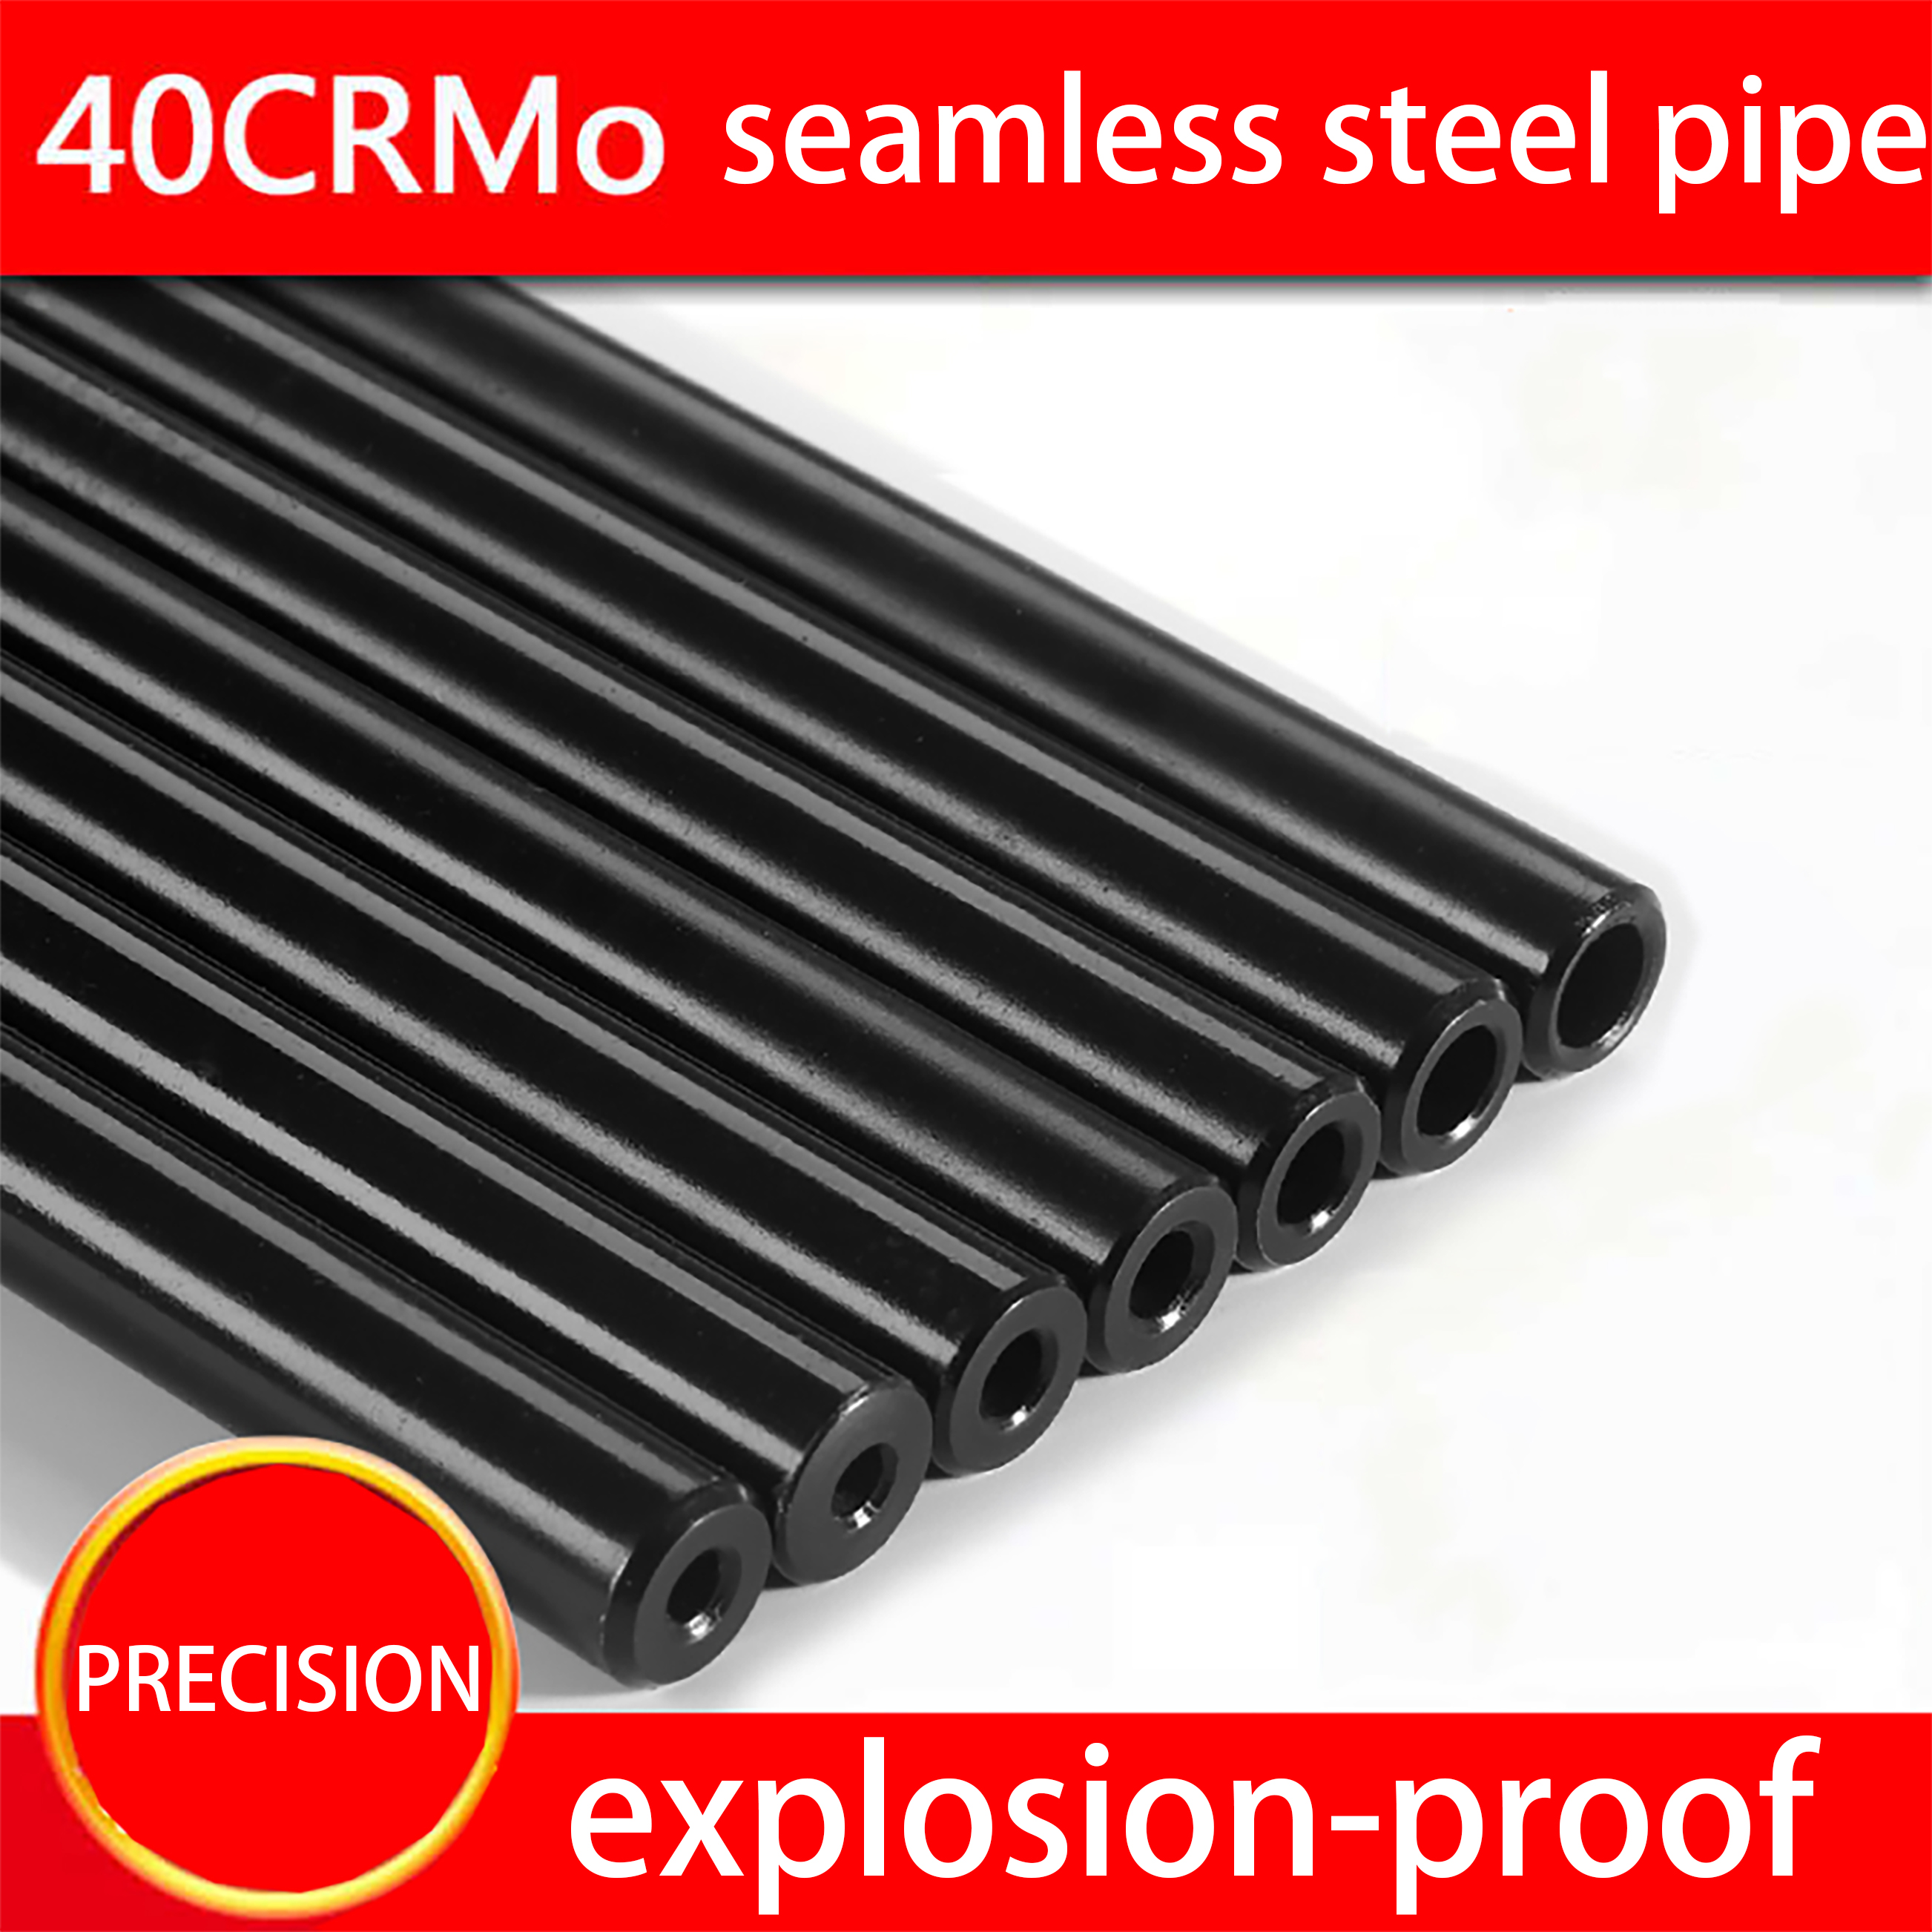 12mm O/D Seamless Steel Pipe Hydraulic Alloy Precision Steel Tubes  Explosion-proof Tool Partprint Black